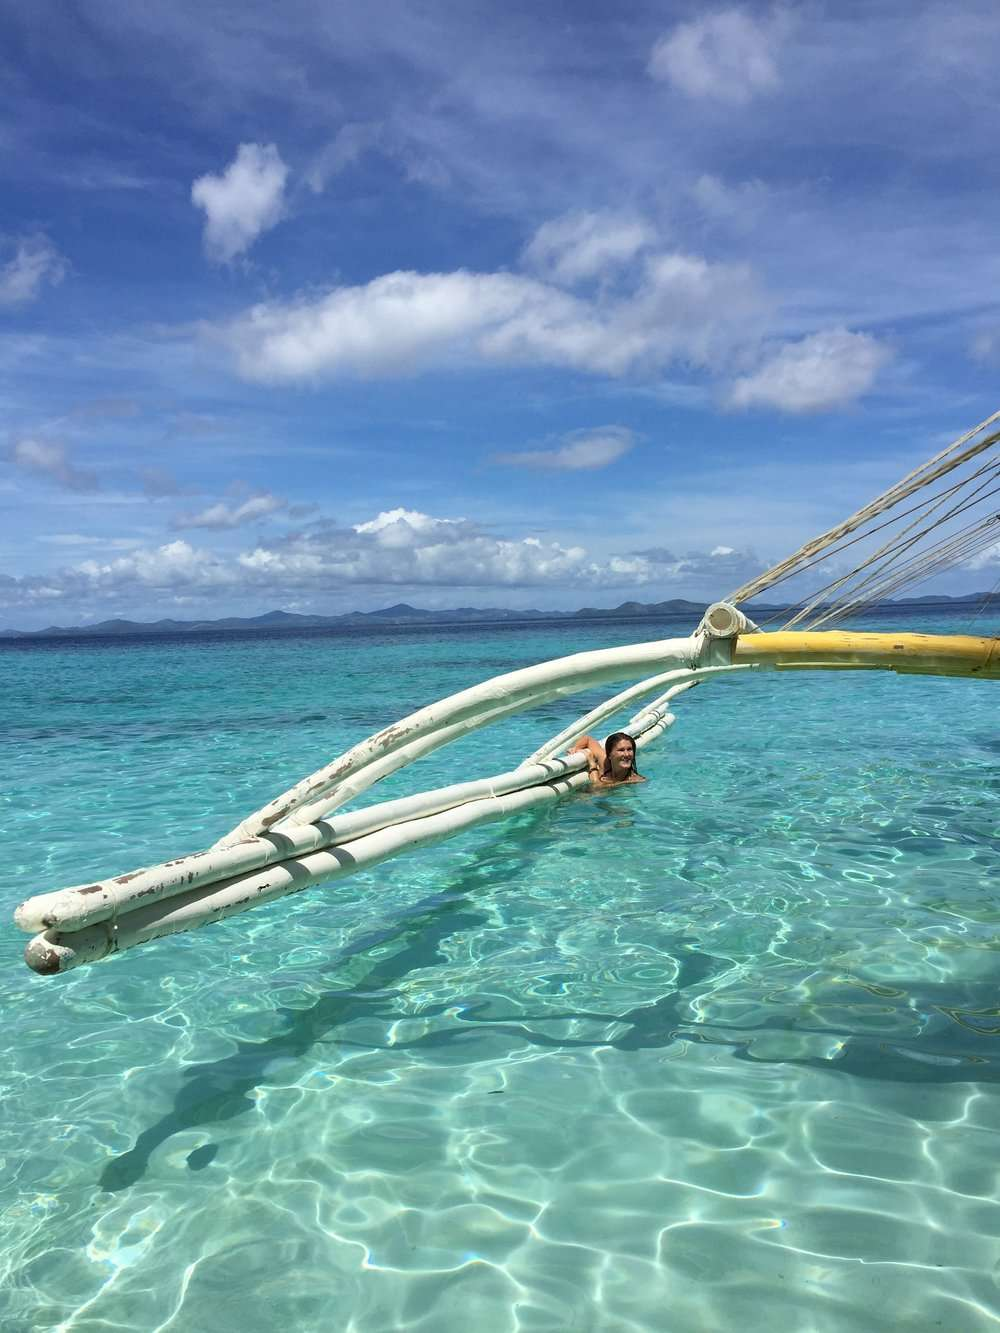 Blue sky and turquoise water with a wooden boat. A lady holds onto the boat from in the water